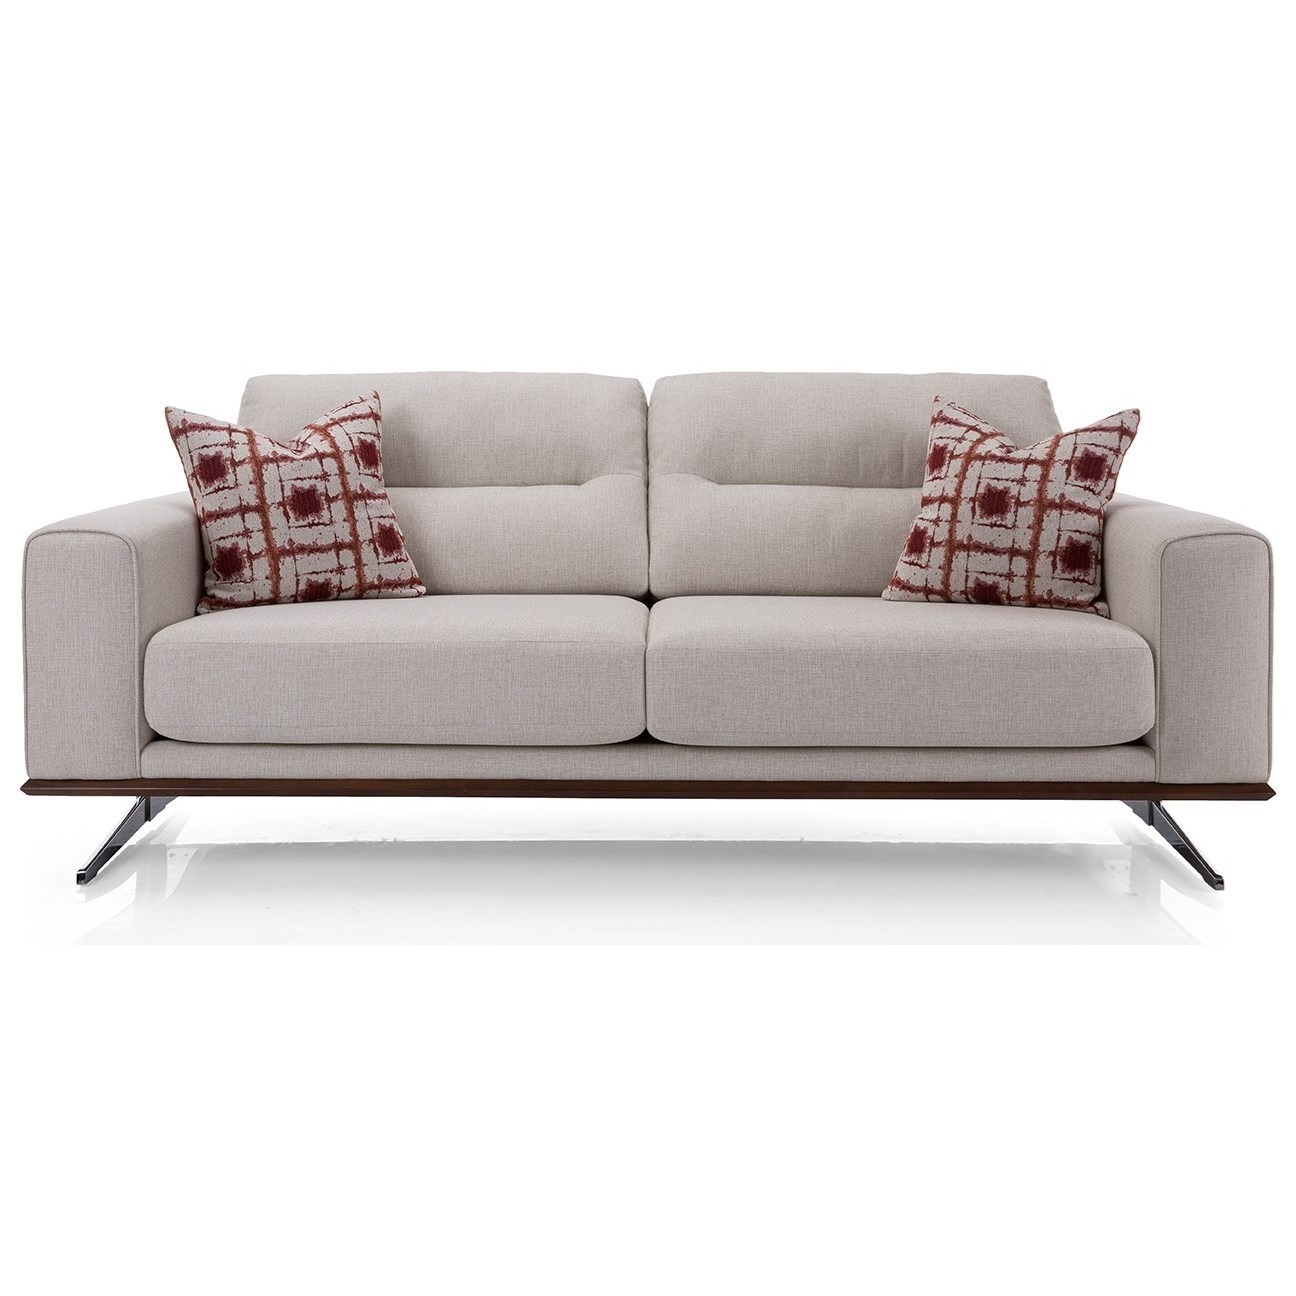 2030 Sofa by Decor-Rest at Stoney Creek Furniture